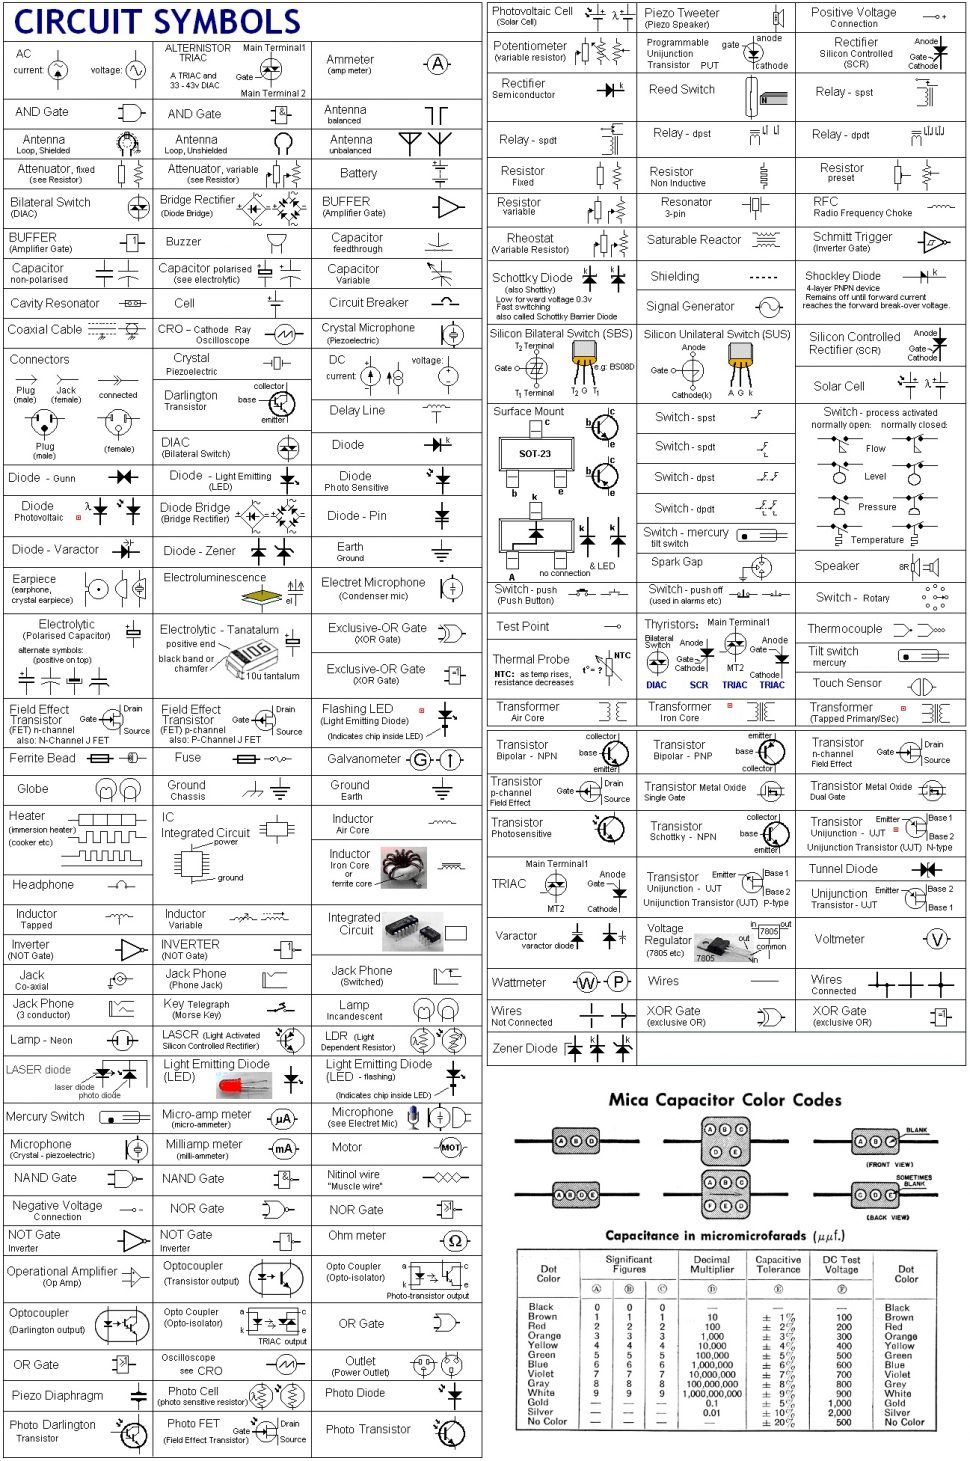 medium resolution of component wiring schematic symbols and meanings electrical download wire autocad australian standards relay schematics for word chart pdf uk wire schematic